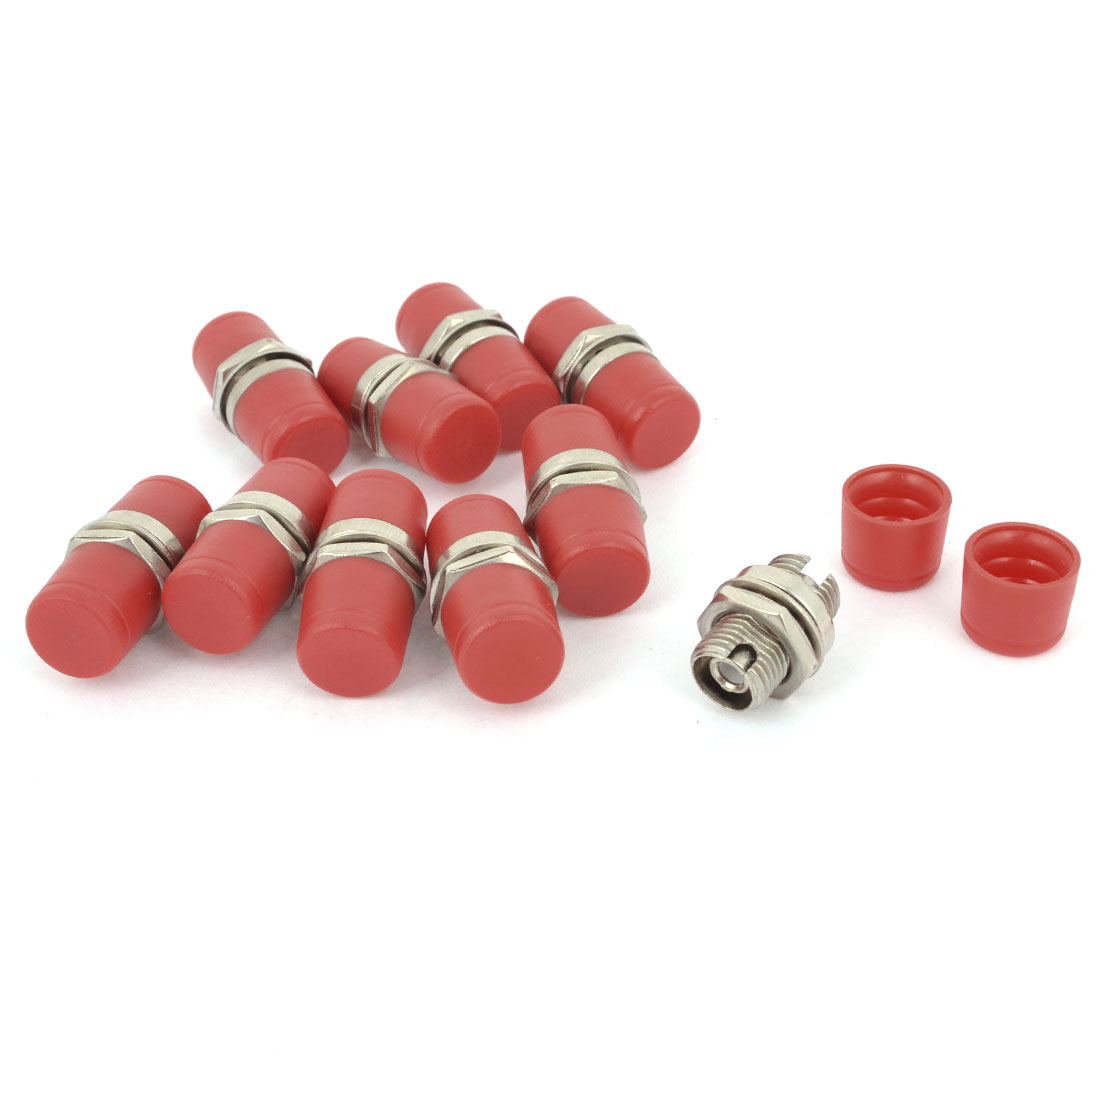 10 Pcs Red Cover Flange Type FC Female Fiber Optic Adapter Connectors